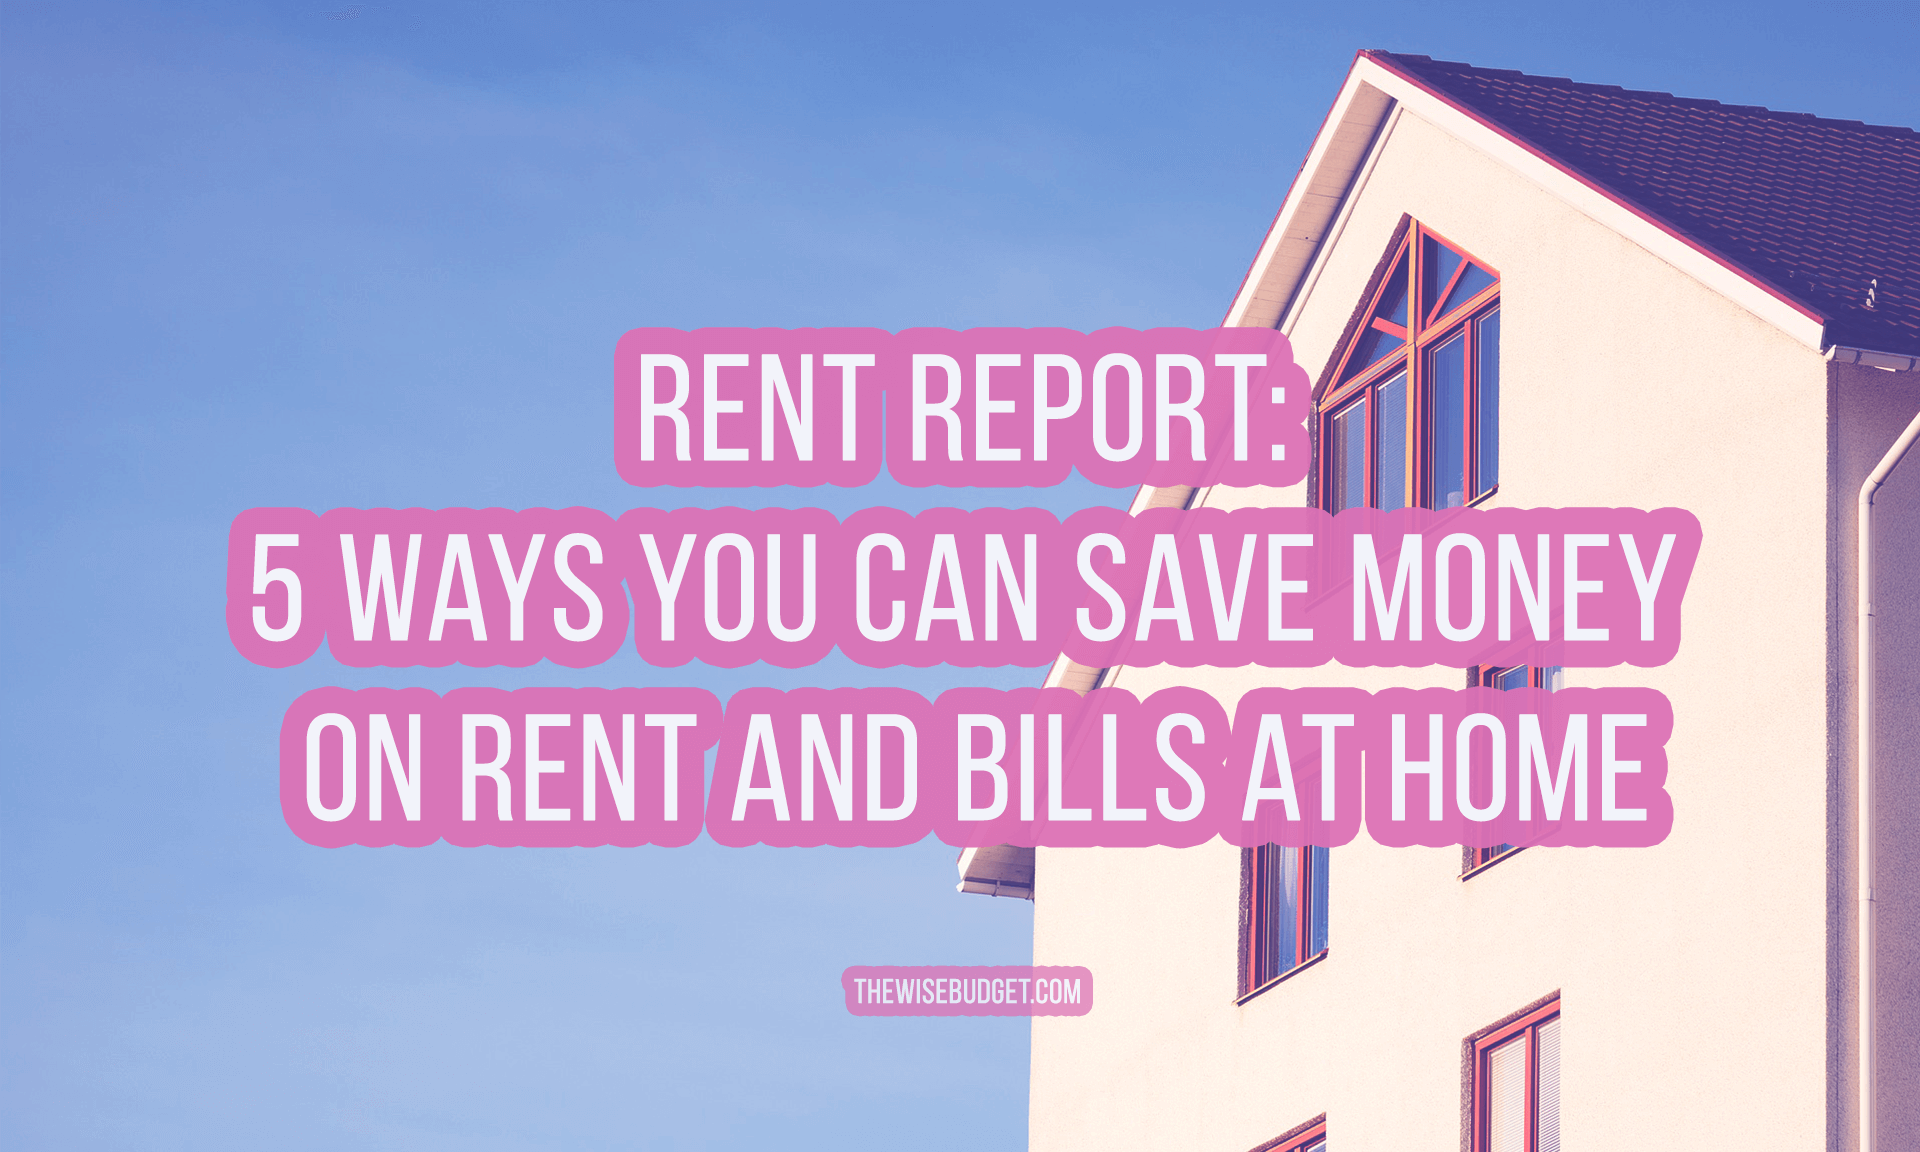 thewisebudget save money on rent and bills